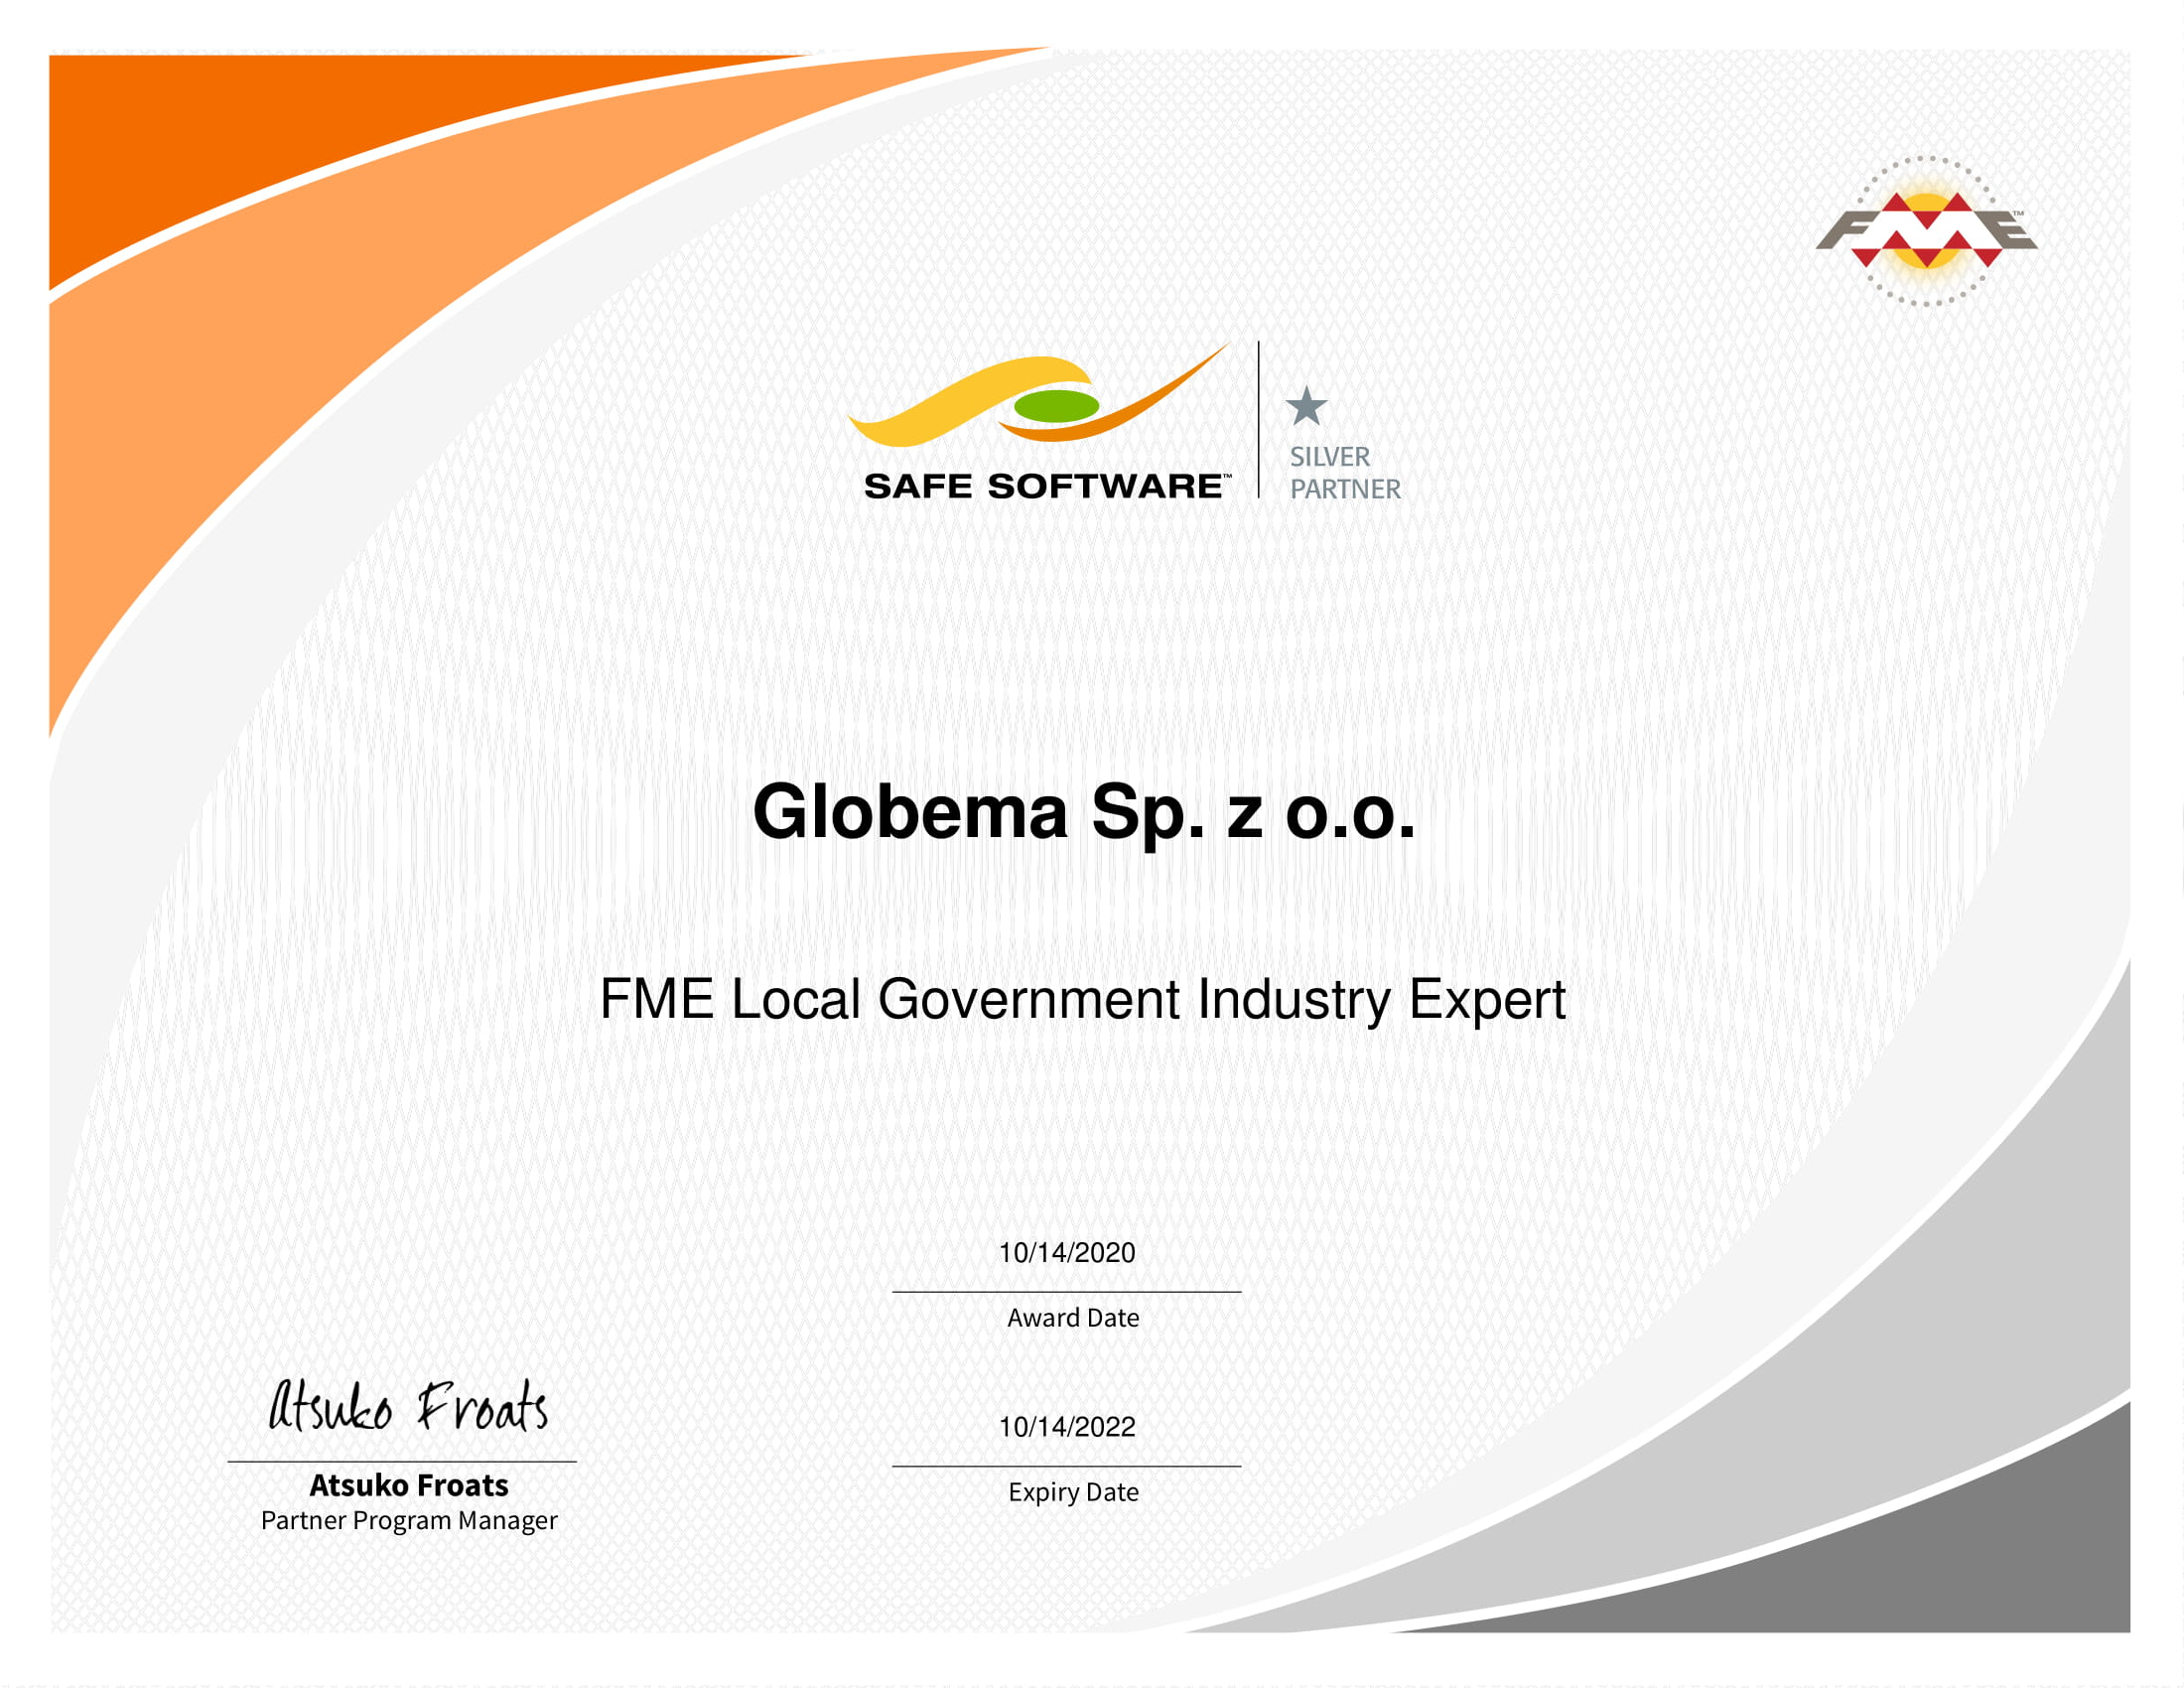 Globema - Local Government